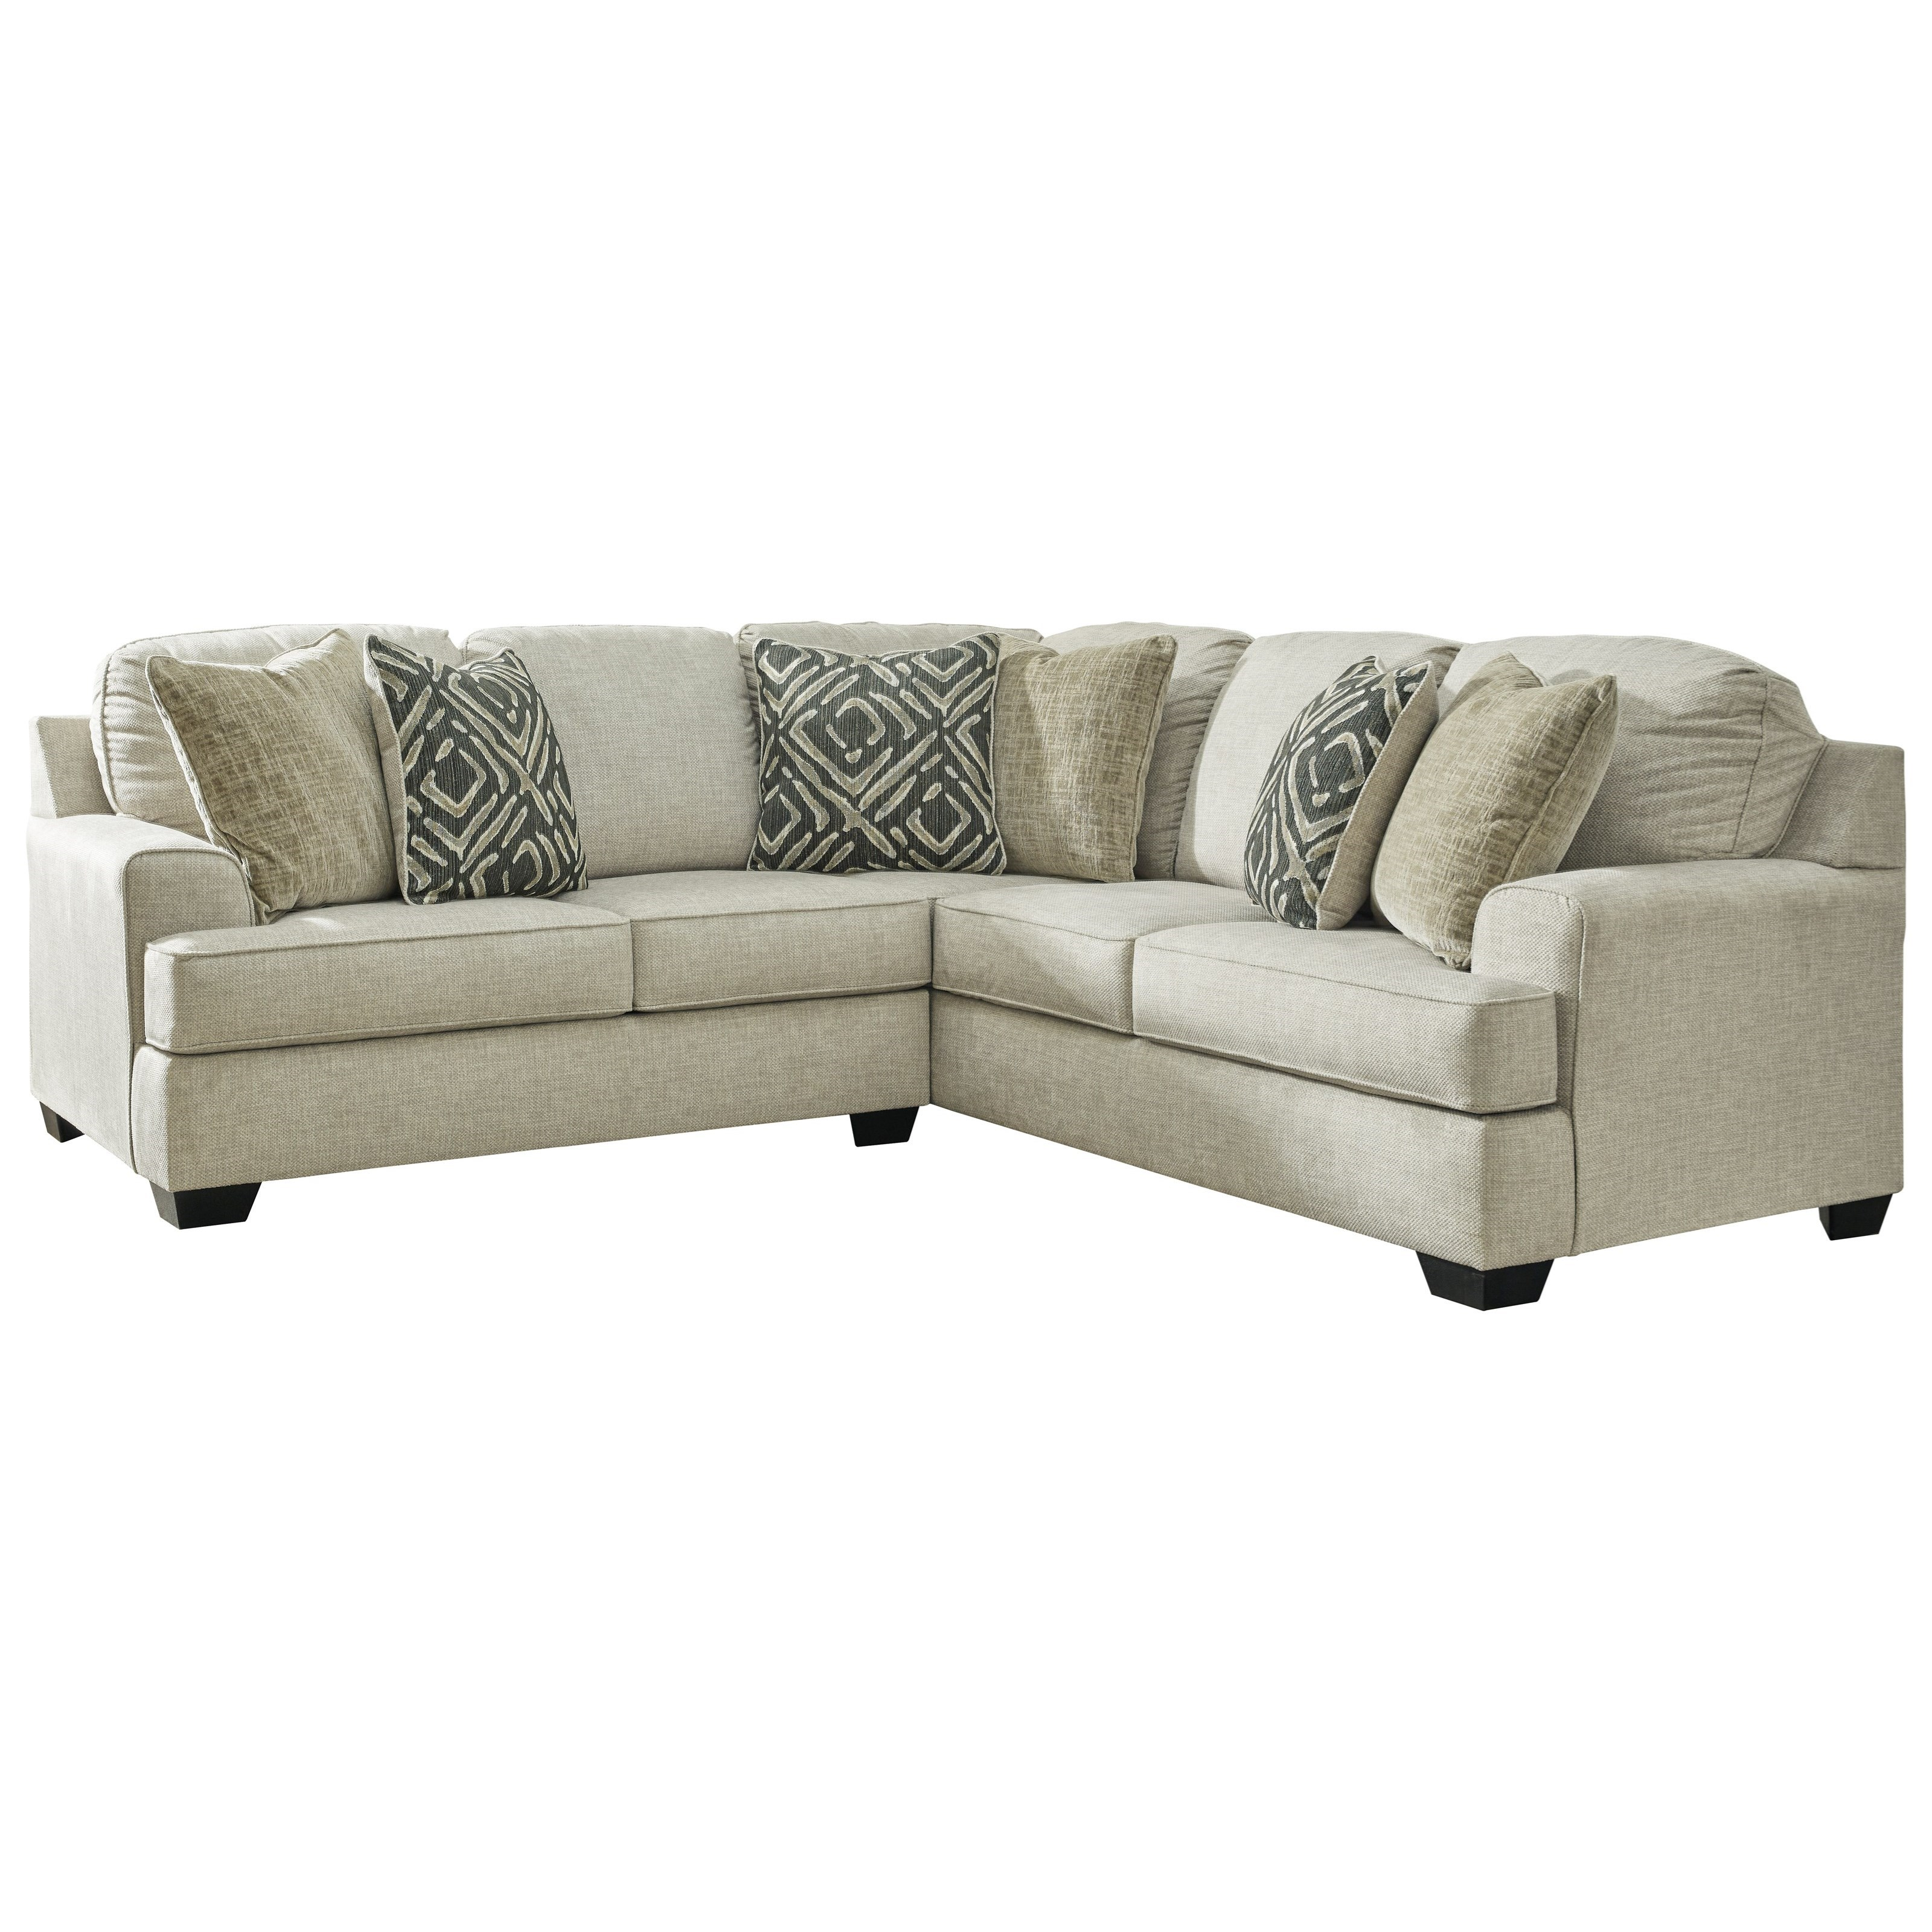 Wellhaven 2-Piece Sectional by Benchcraft at Northeast Factory Direct